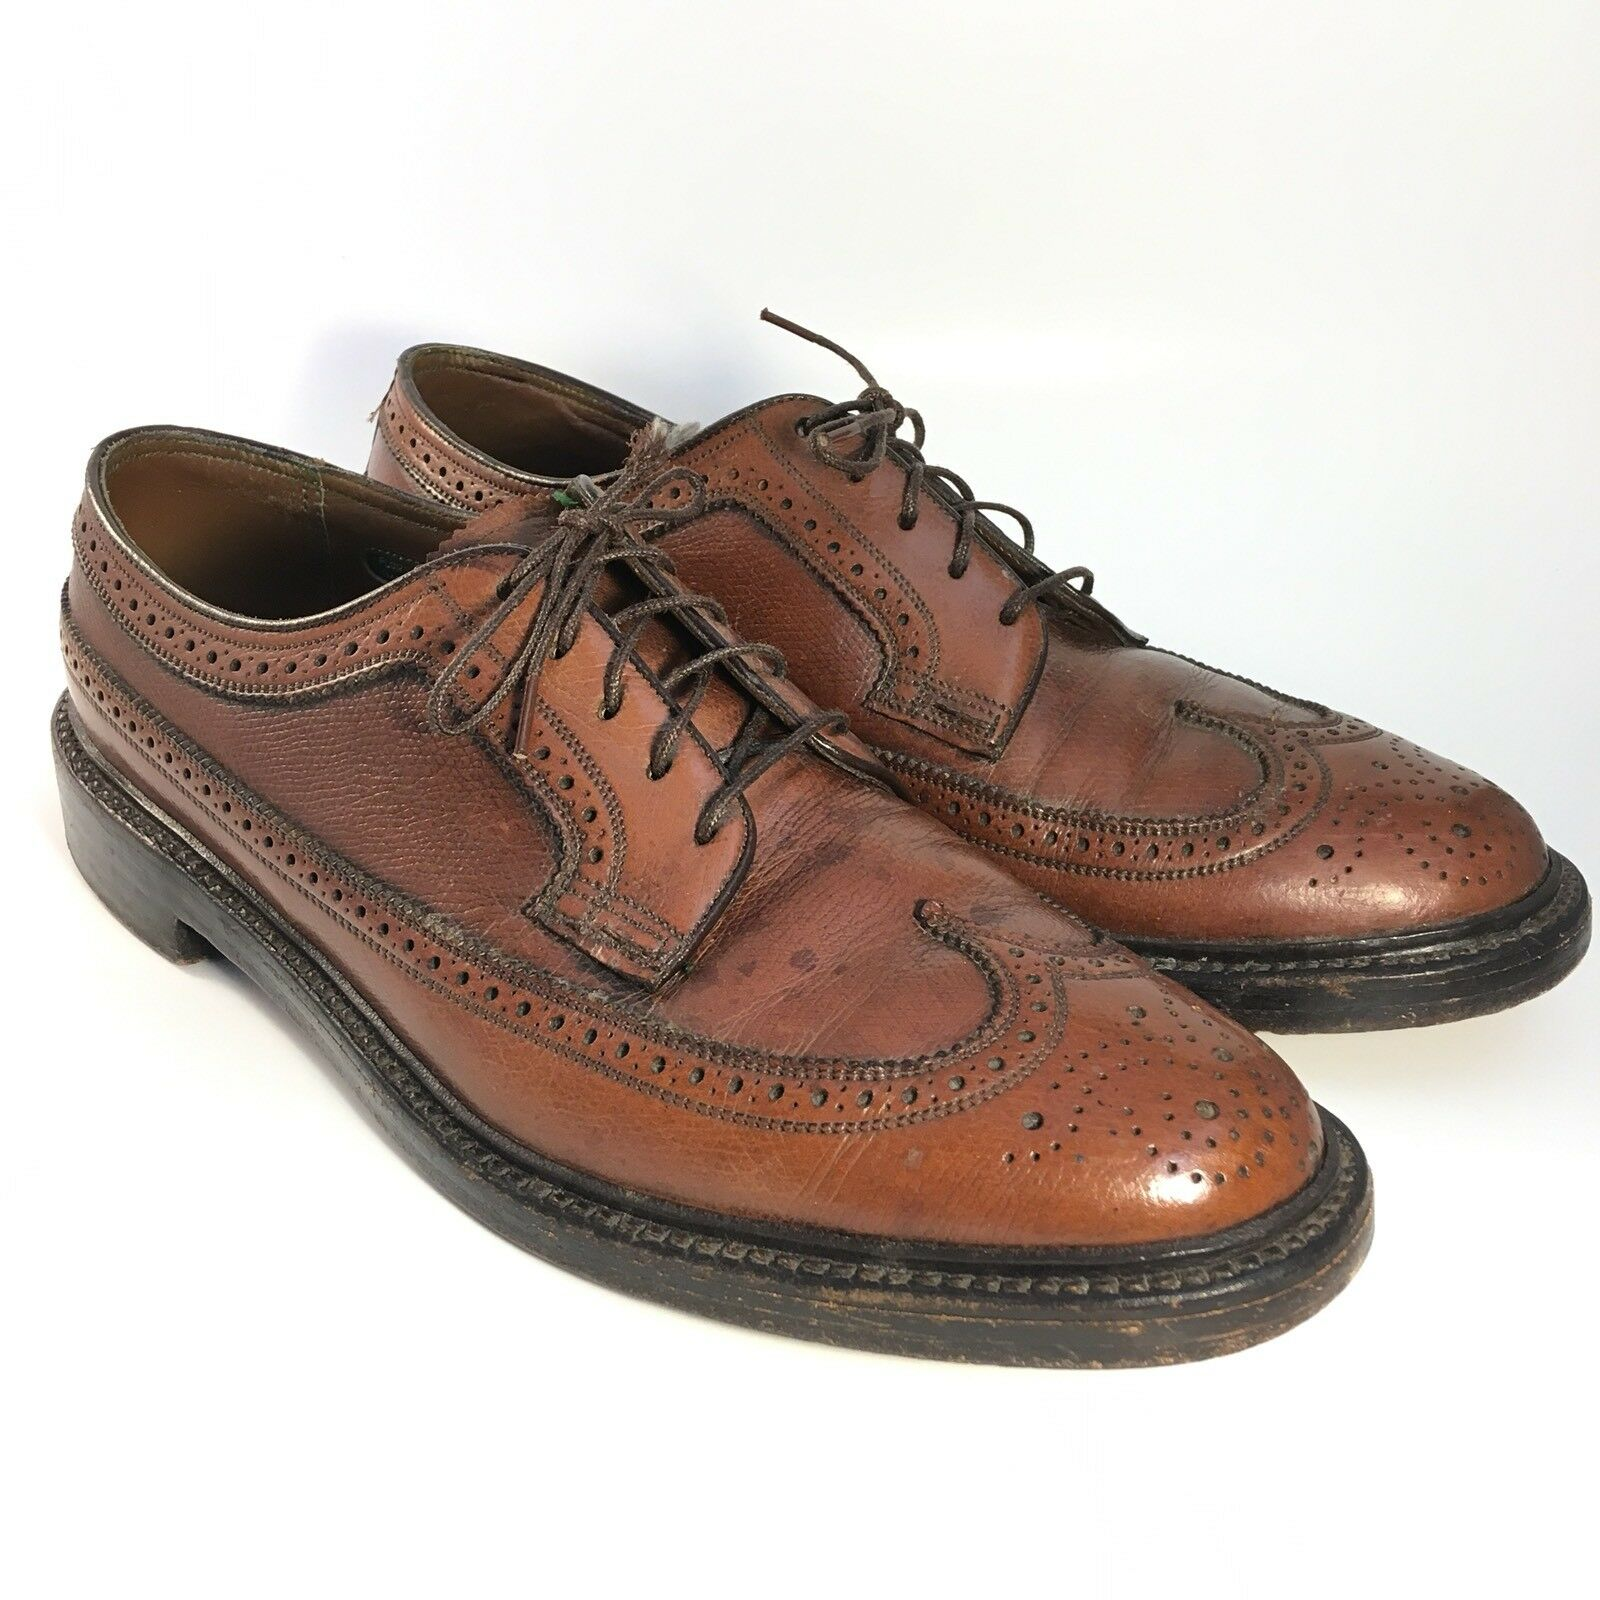 Vintage Marron Florsheim Imperial Kenmoor V  Cleat 5 ongles 93602 Bout D'Aile 9 B Lacets